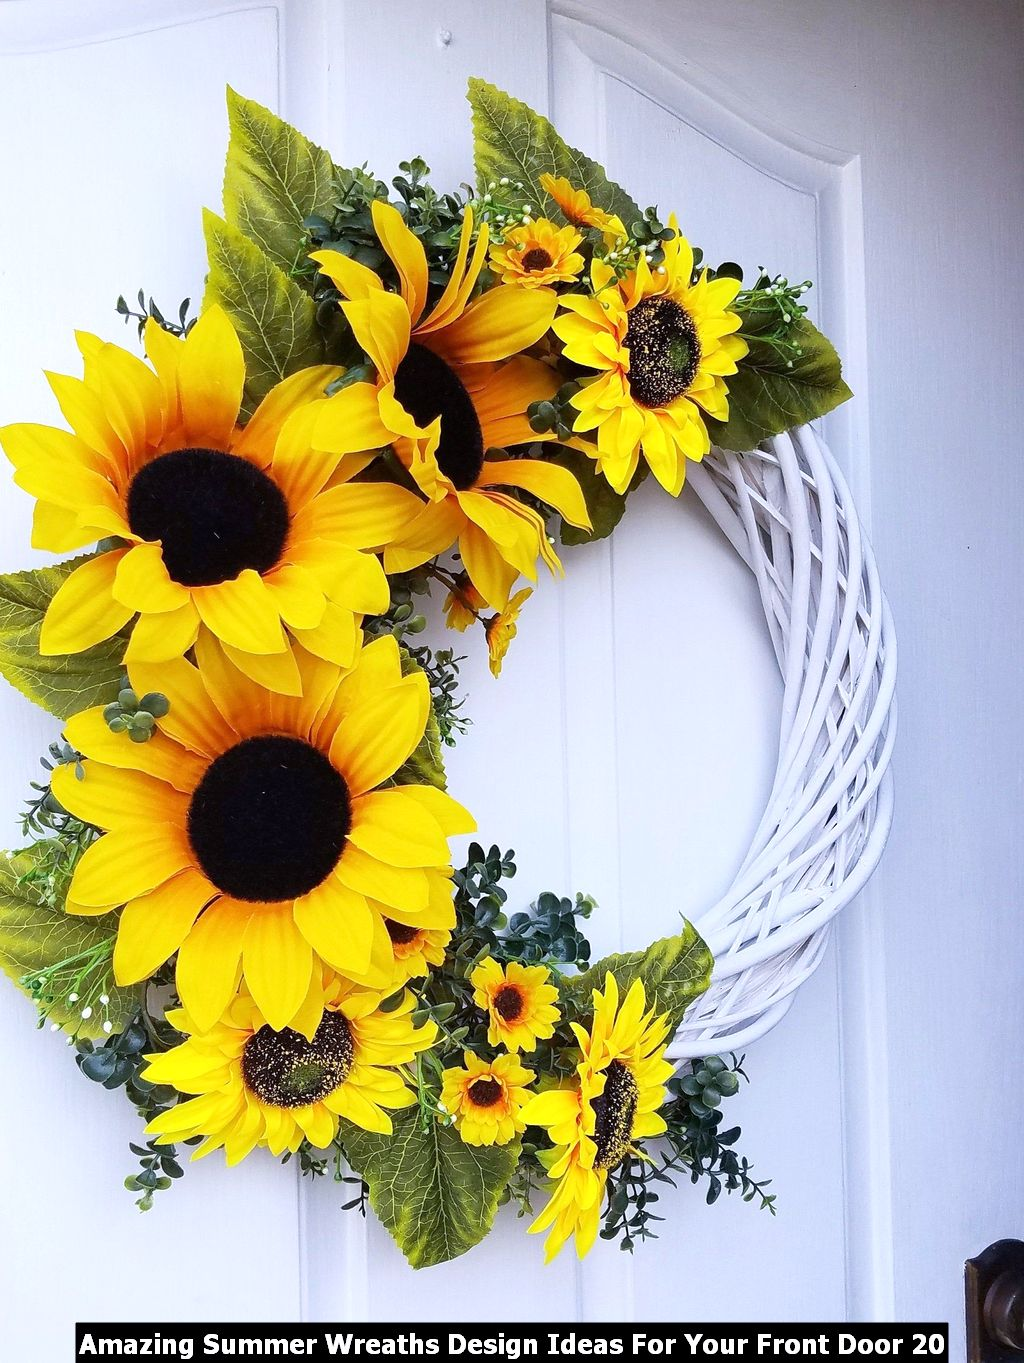 Amazing Summer Wreaths Design Ideas For Your Front Door 20